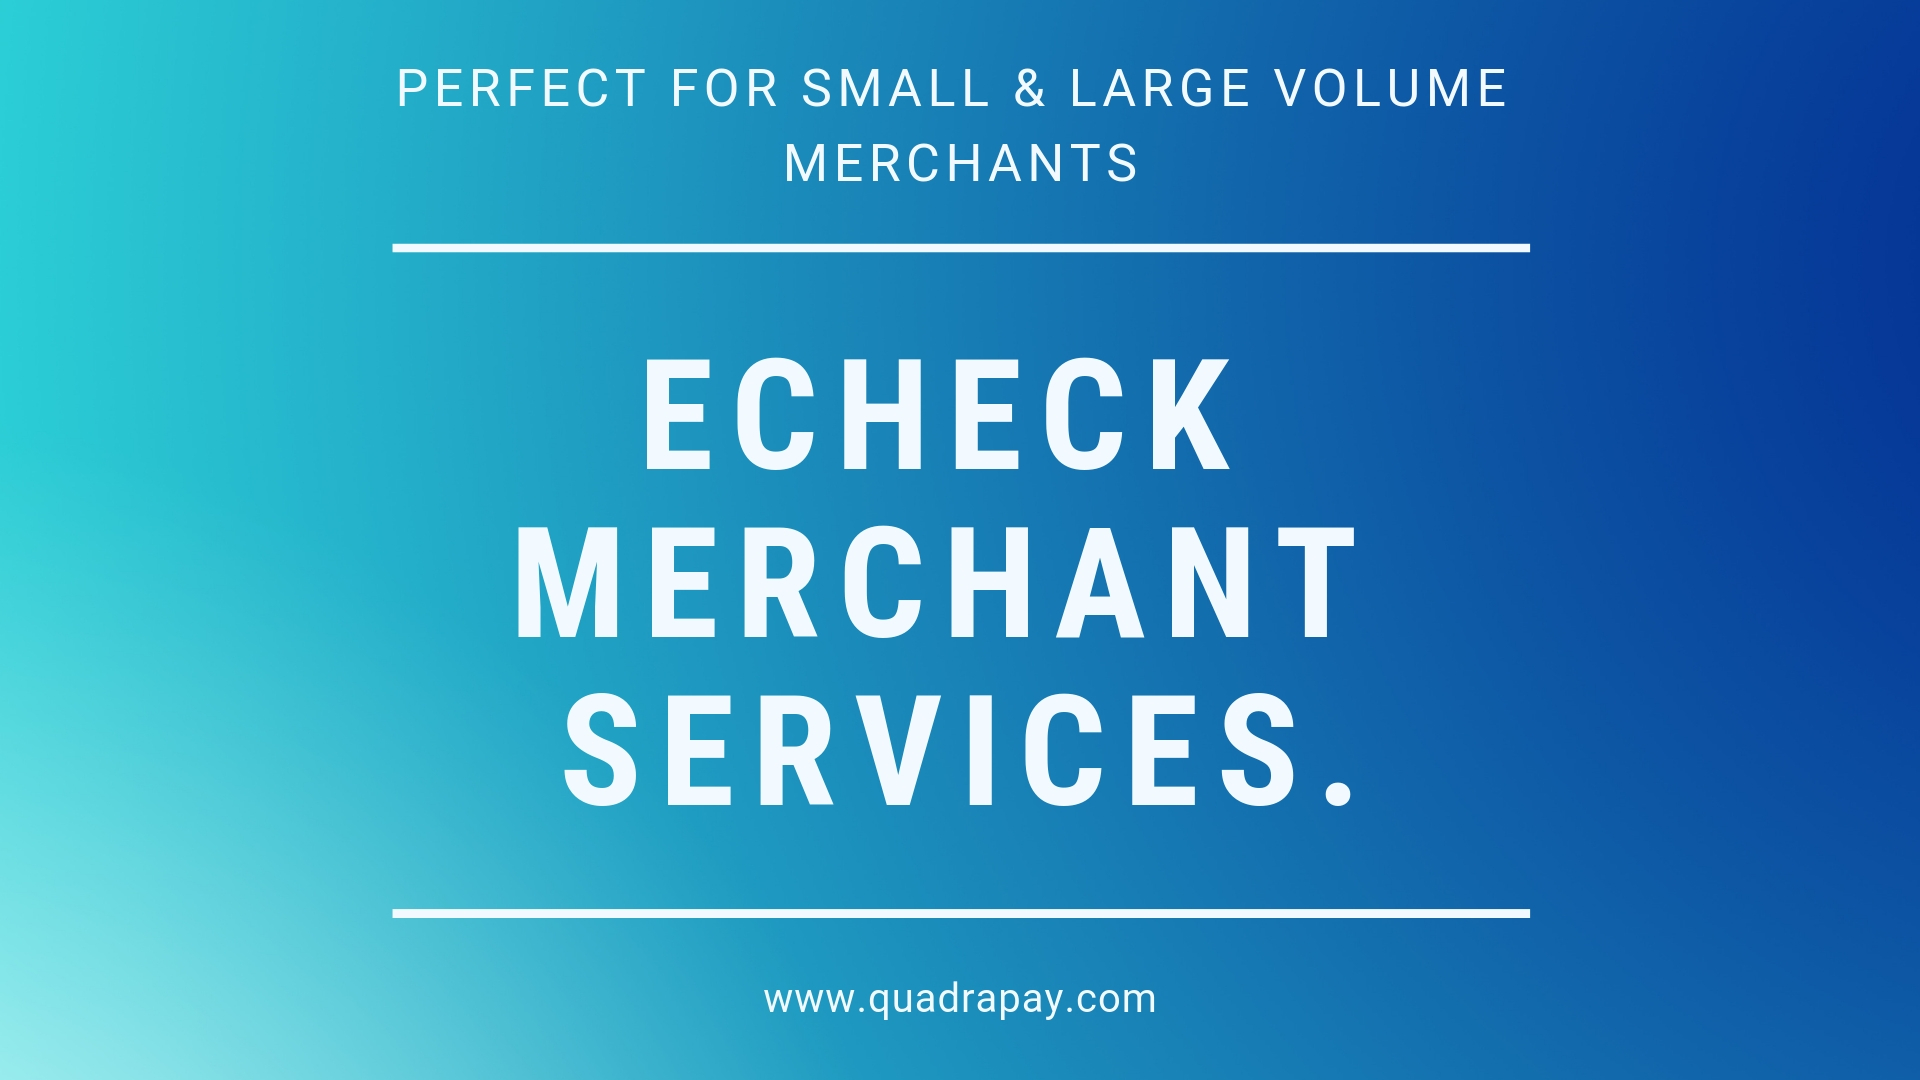 Echeck Merchant Services By Quadrapay